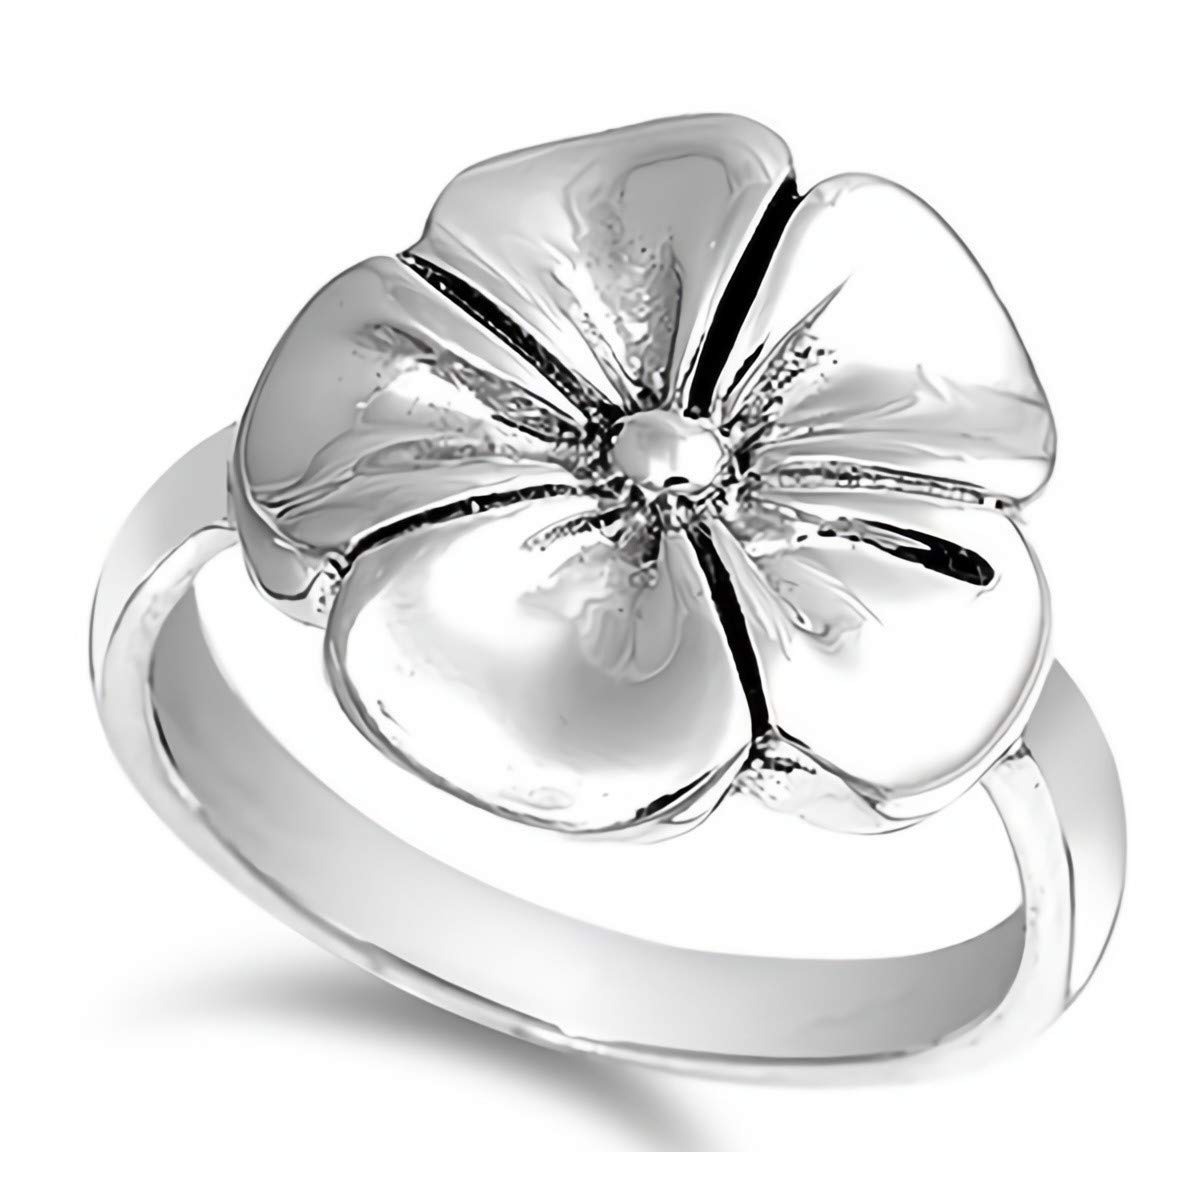 Plumeria Cute Jewelry Gift for Women in Gift Box Glitzs Jewels 925 Sterling Silver Ring